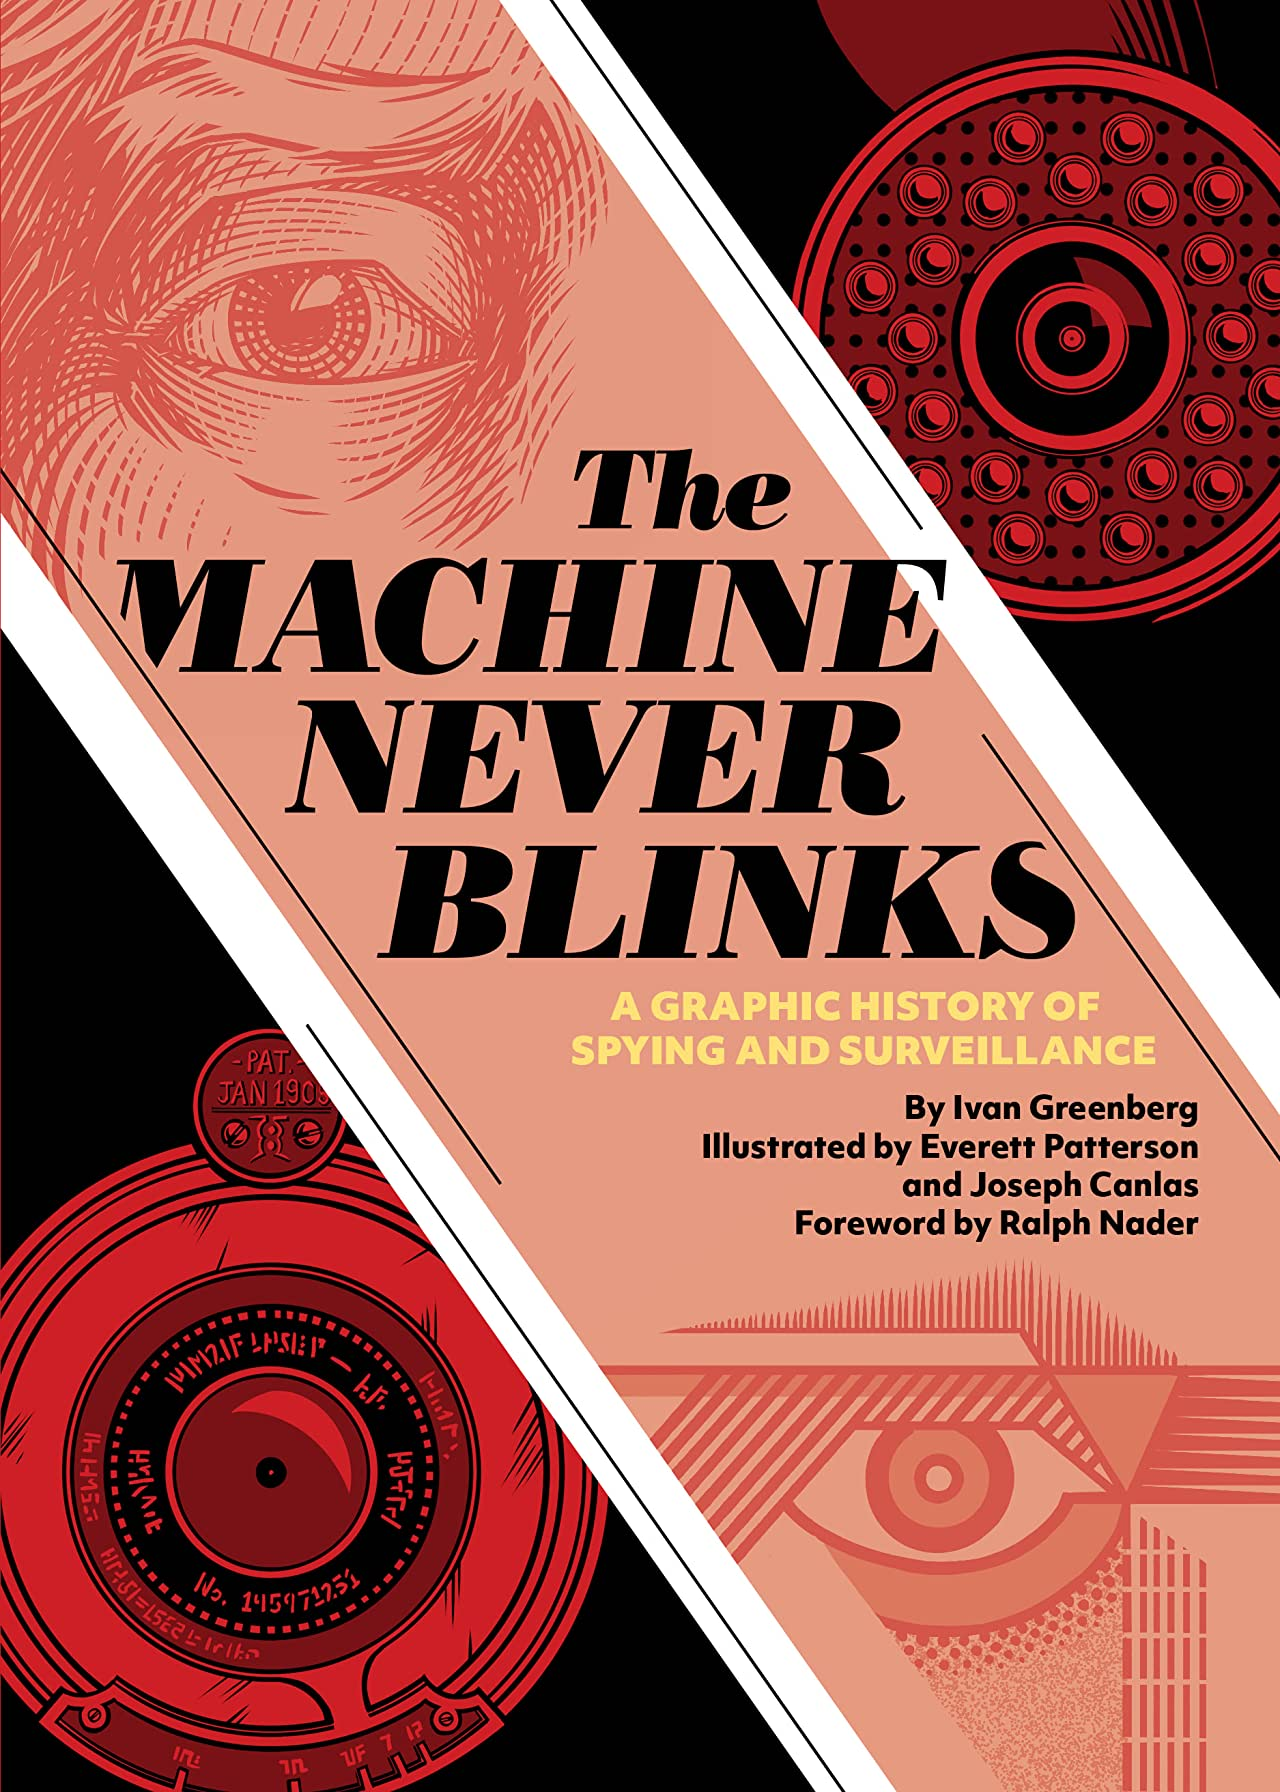 The Machine Never Blinks: A Graphic History of Spying and Surveillance